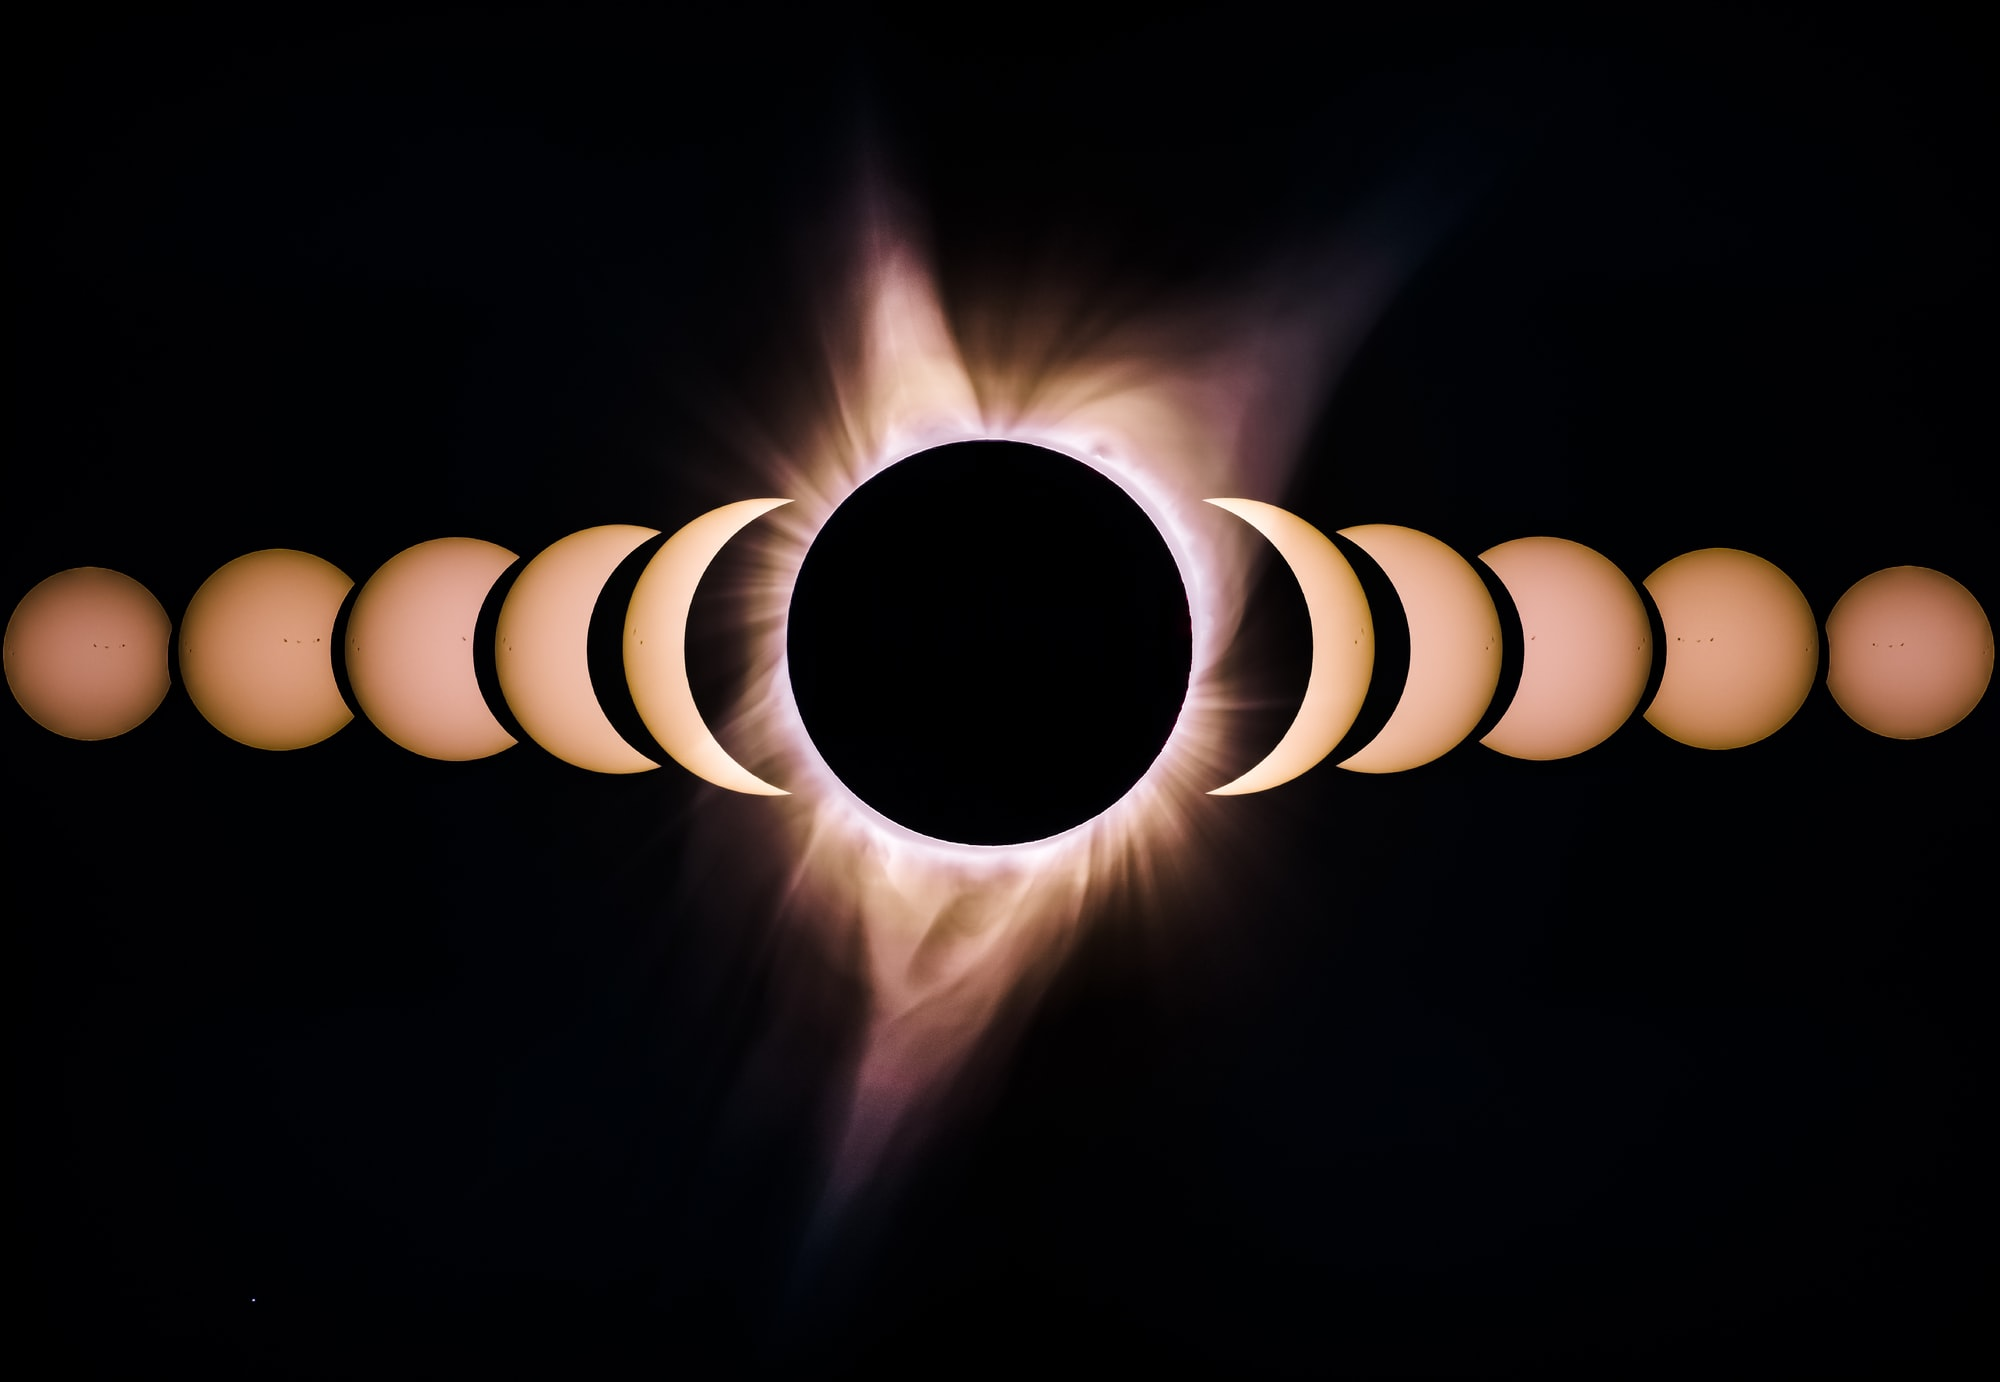 This is a composition I made during the eclipse. It shows the beginning of the eclipse all the way to totality in the center. Each photo was taken about 10 minutes apart. I took these photos at Crooked River Ranch in Oregon. I just happened to find this spot on Google maps. I am very pleased with the outcome. I'm on IG @bryangoffphoto Stop by and say hi!